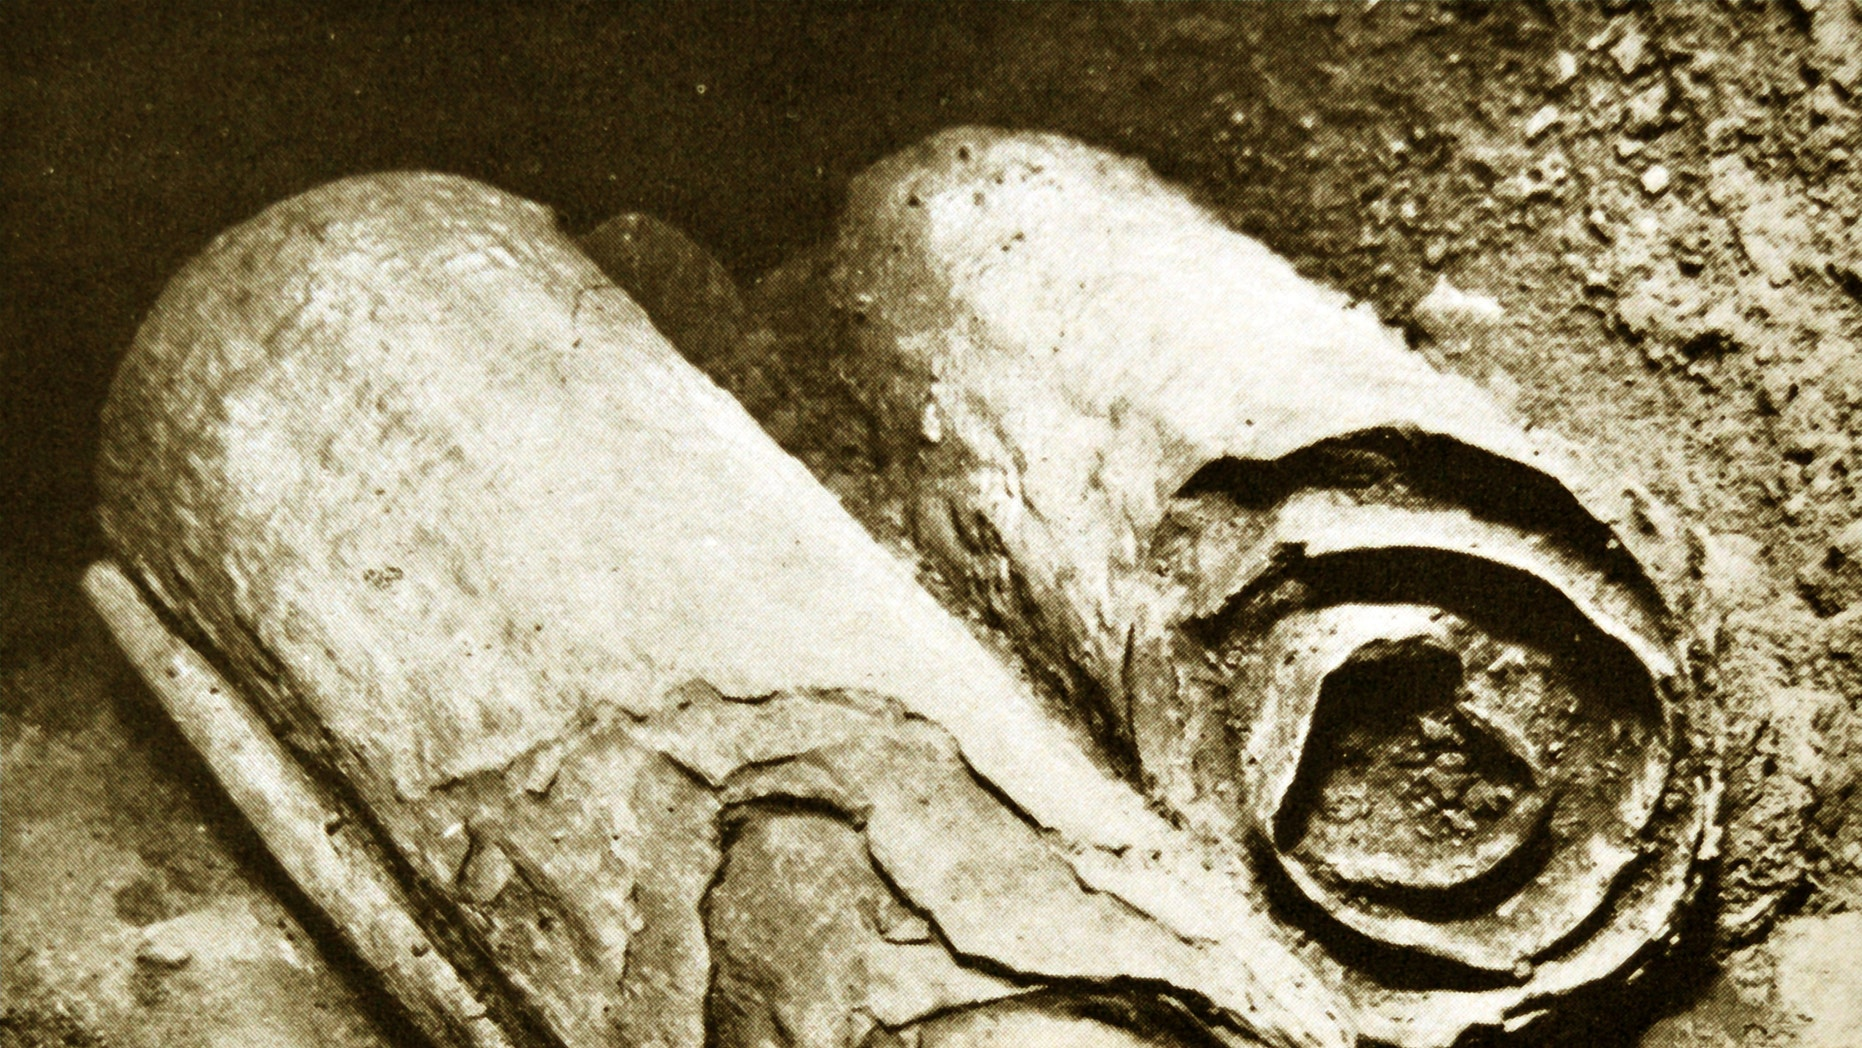 A 1947 excavation of the The Dead Sea Scrolls.